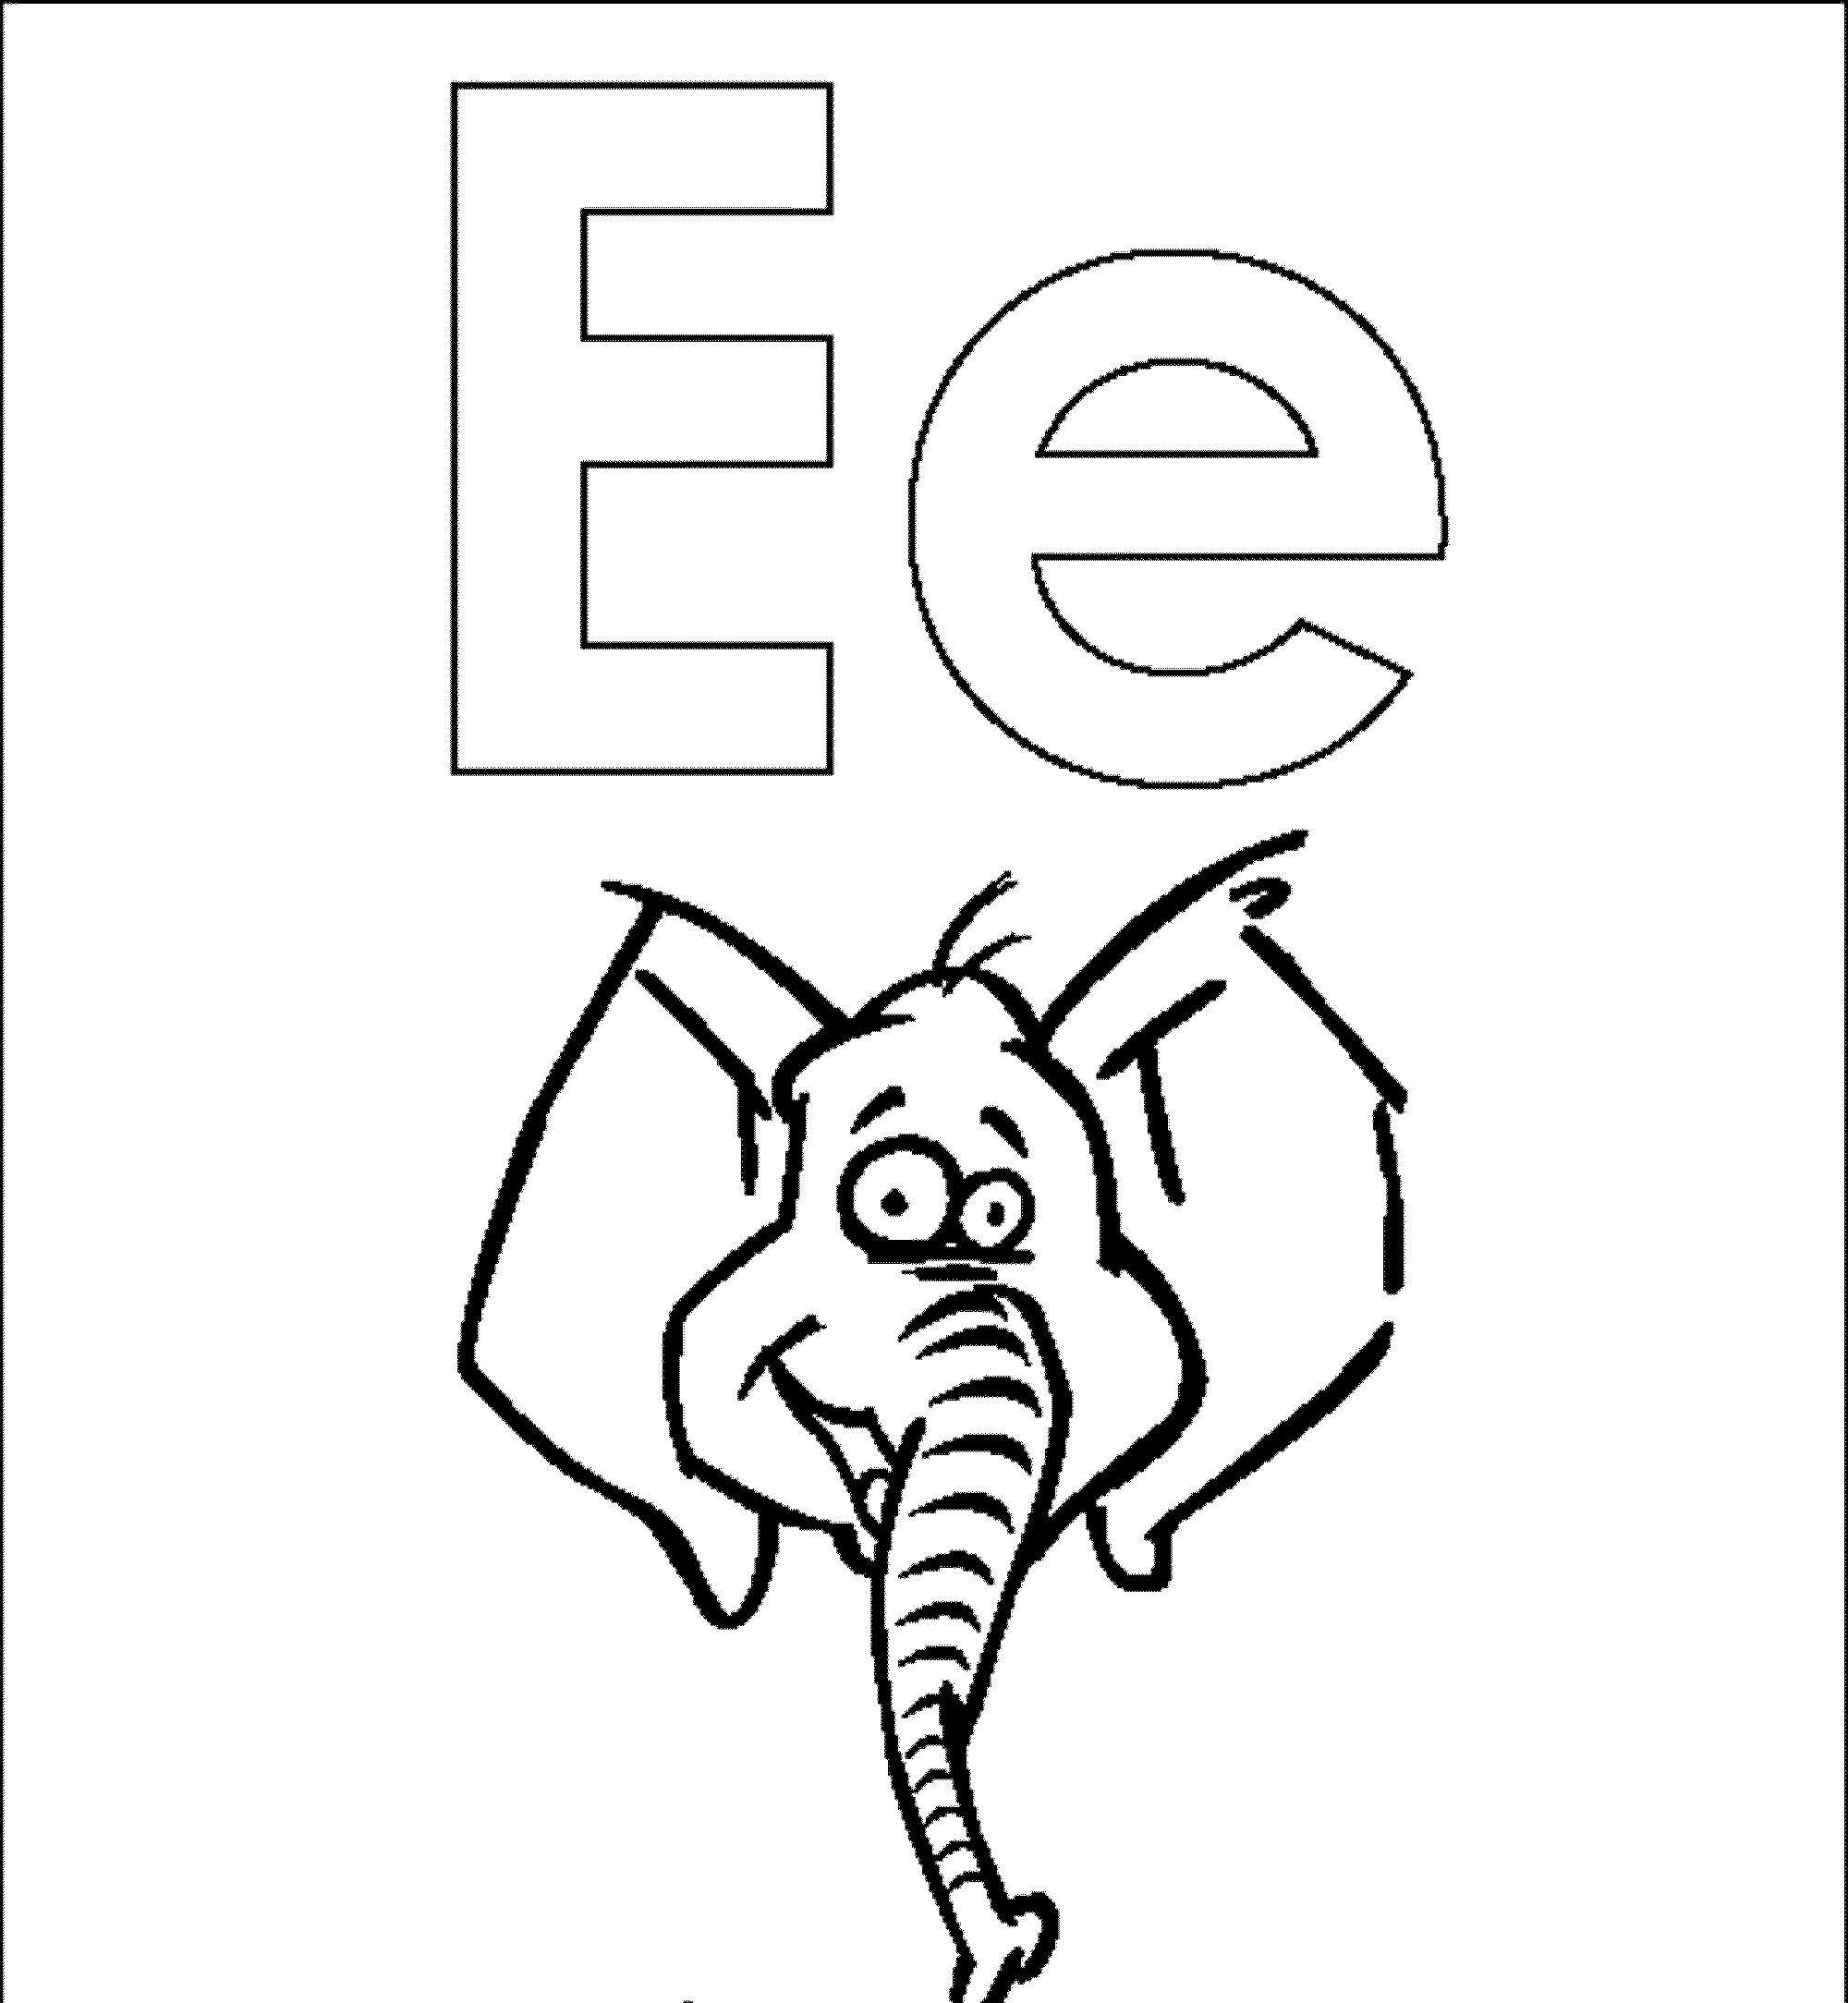 Letter E Drawing At Getdrawings